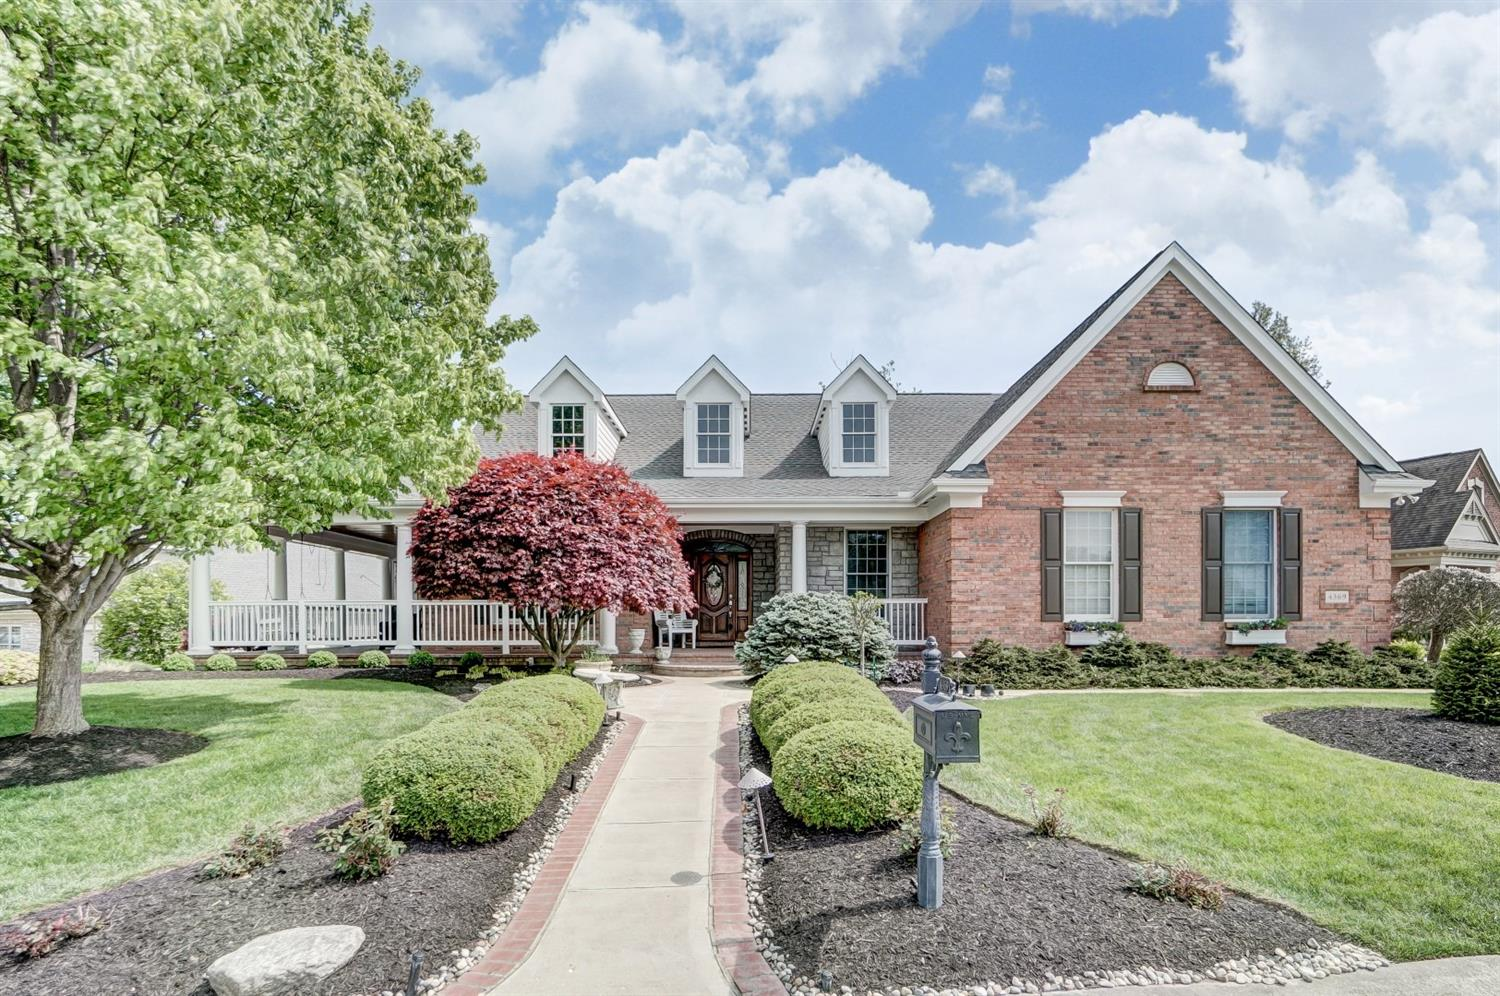 4369 St Cloud Wy Miami Twp. (West), OH